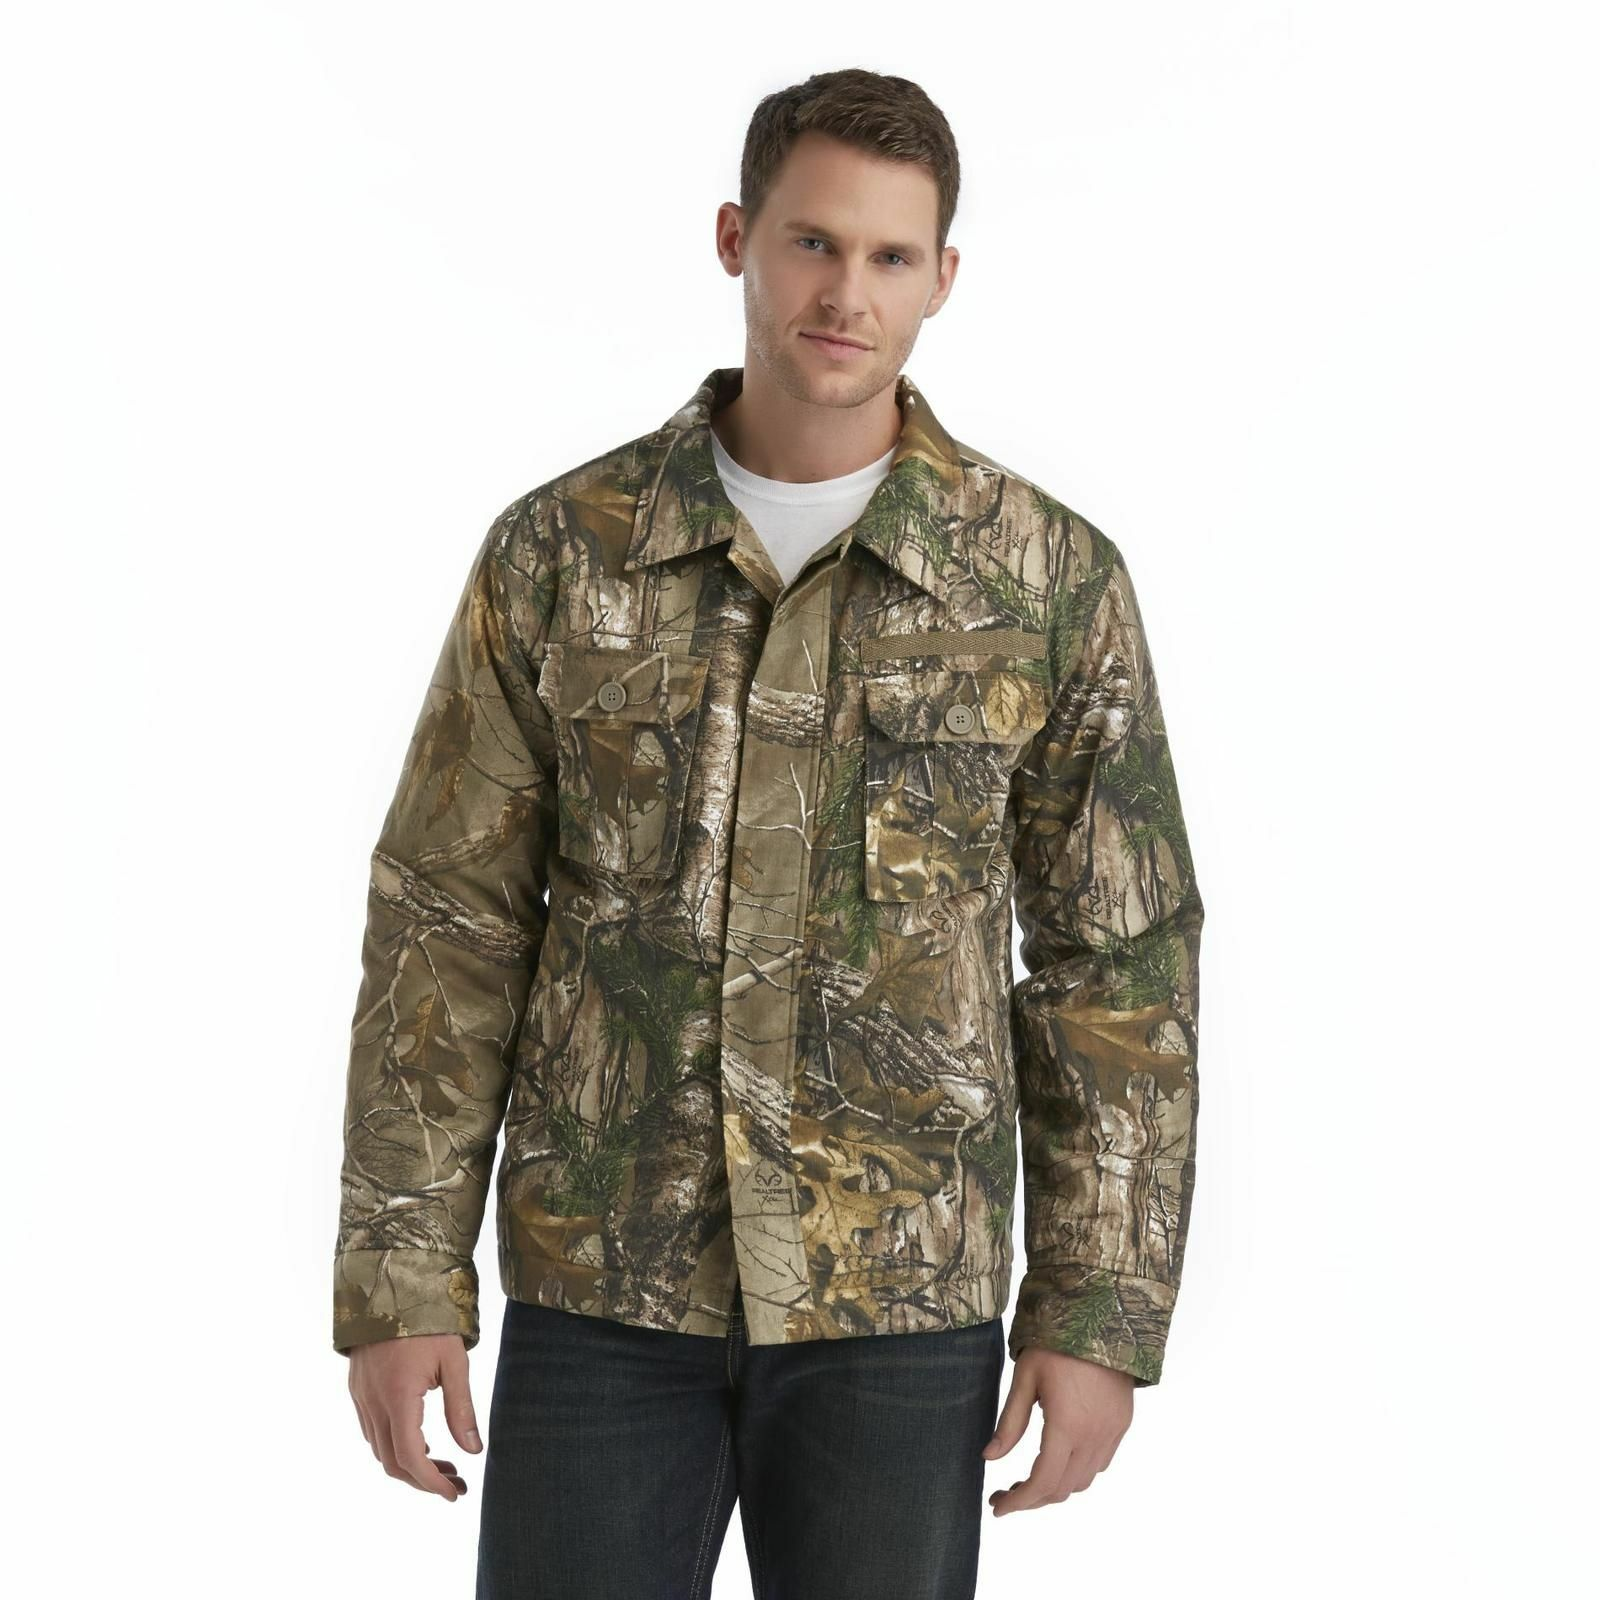 Northwest Territory Men's Realtree Xtra Field Coat - Camo, LG  or XL New w tags  low price